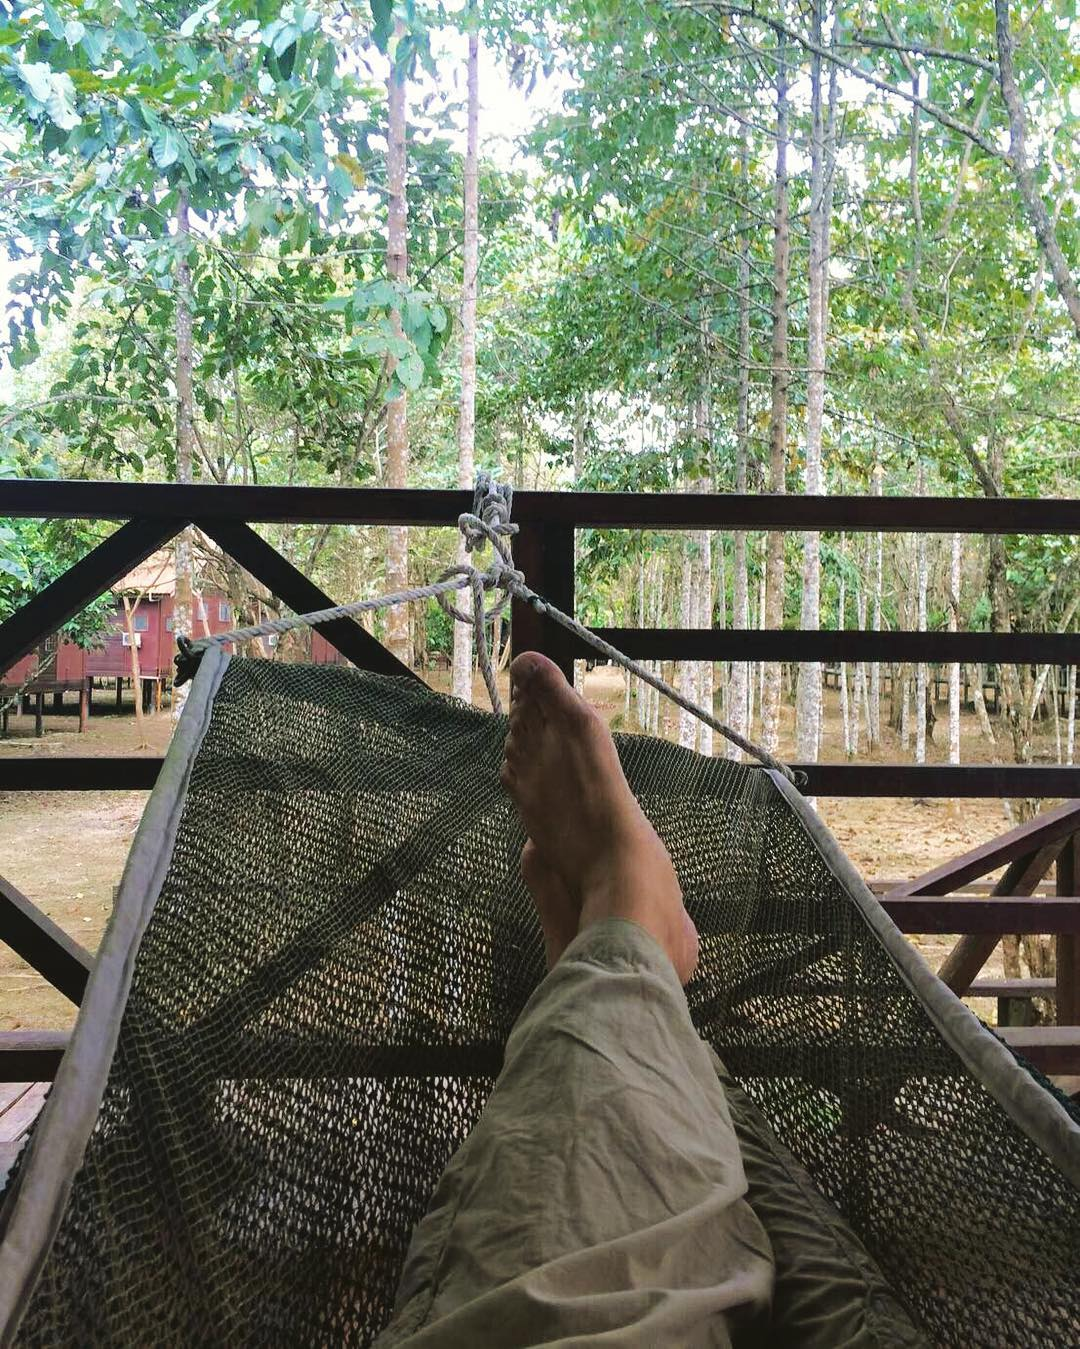 Just another relaxing day in a hammock near the Kinabatanganhellip